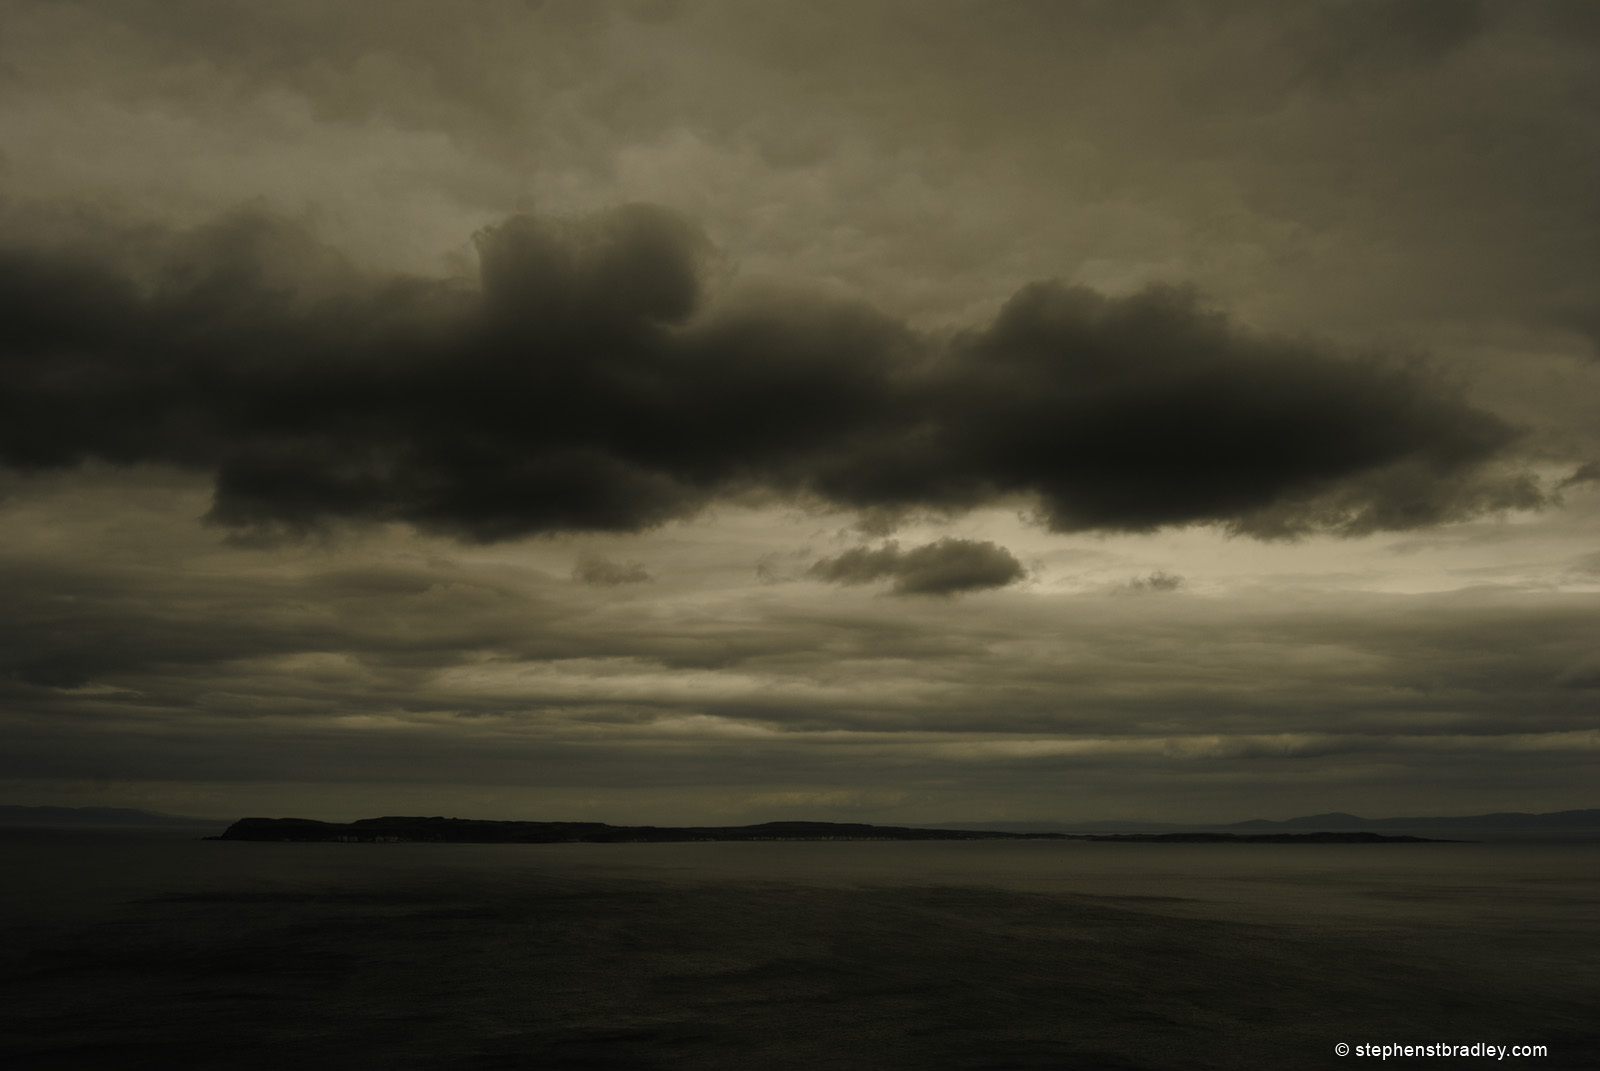 Landscape photograph of Rathlin Island, Northern Ireland by Stephen Bradley photographer - photo 2131.